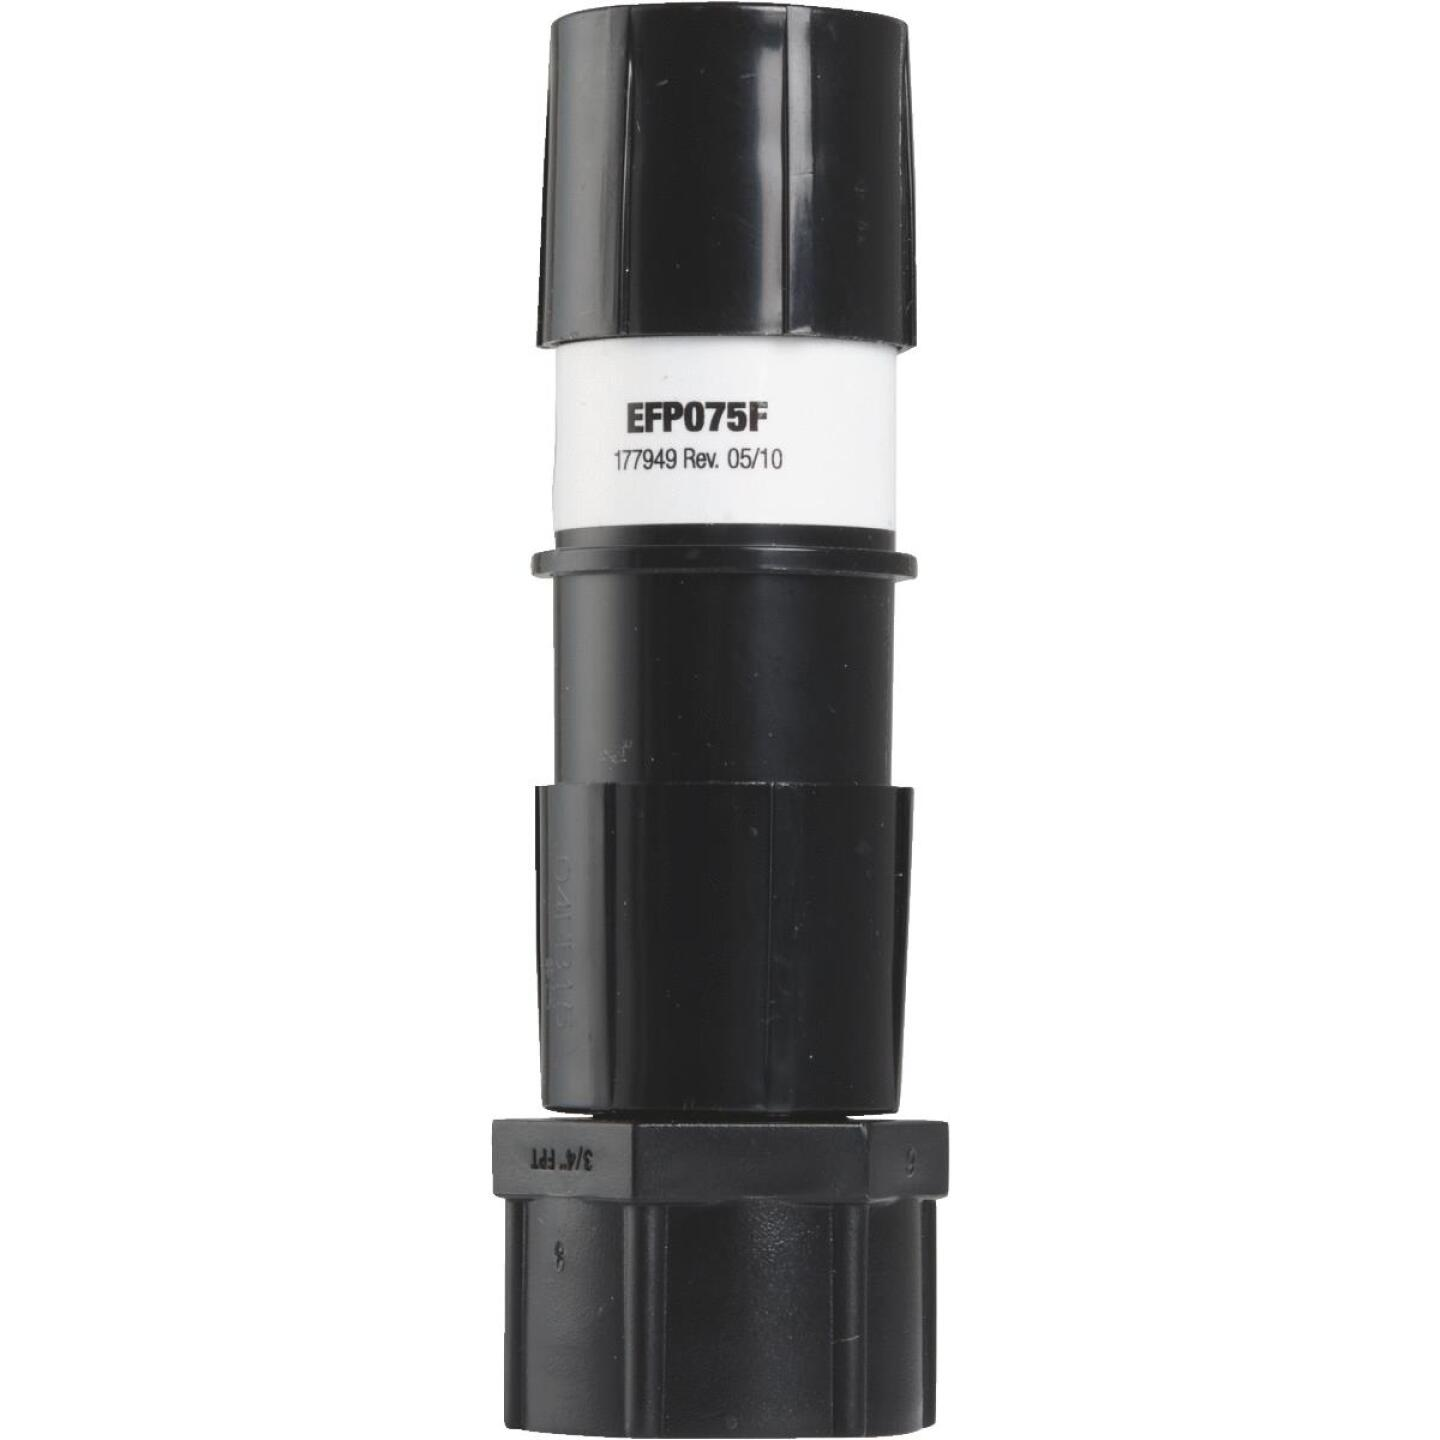 Rain Bird Easy Fit 3/4 In. Female Pipe Thread x 1/2 In. Compression Sprinkler-To-Drip-Adapter Image 2